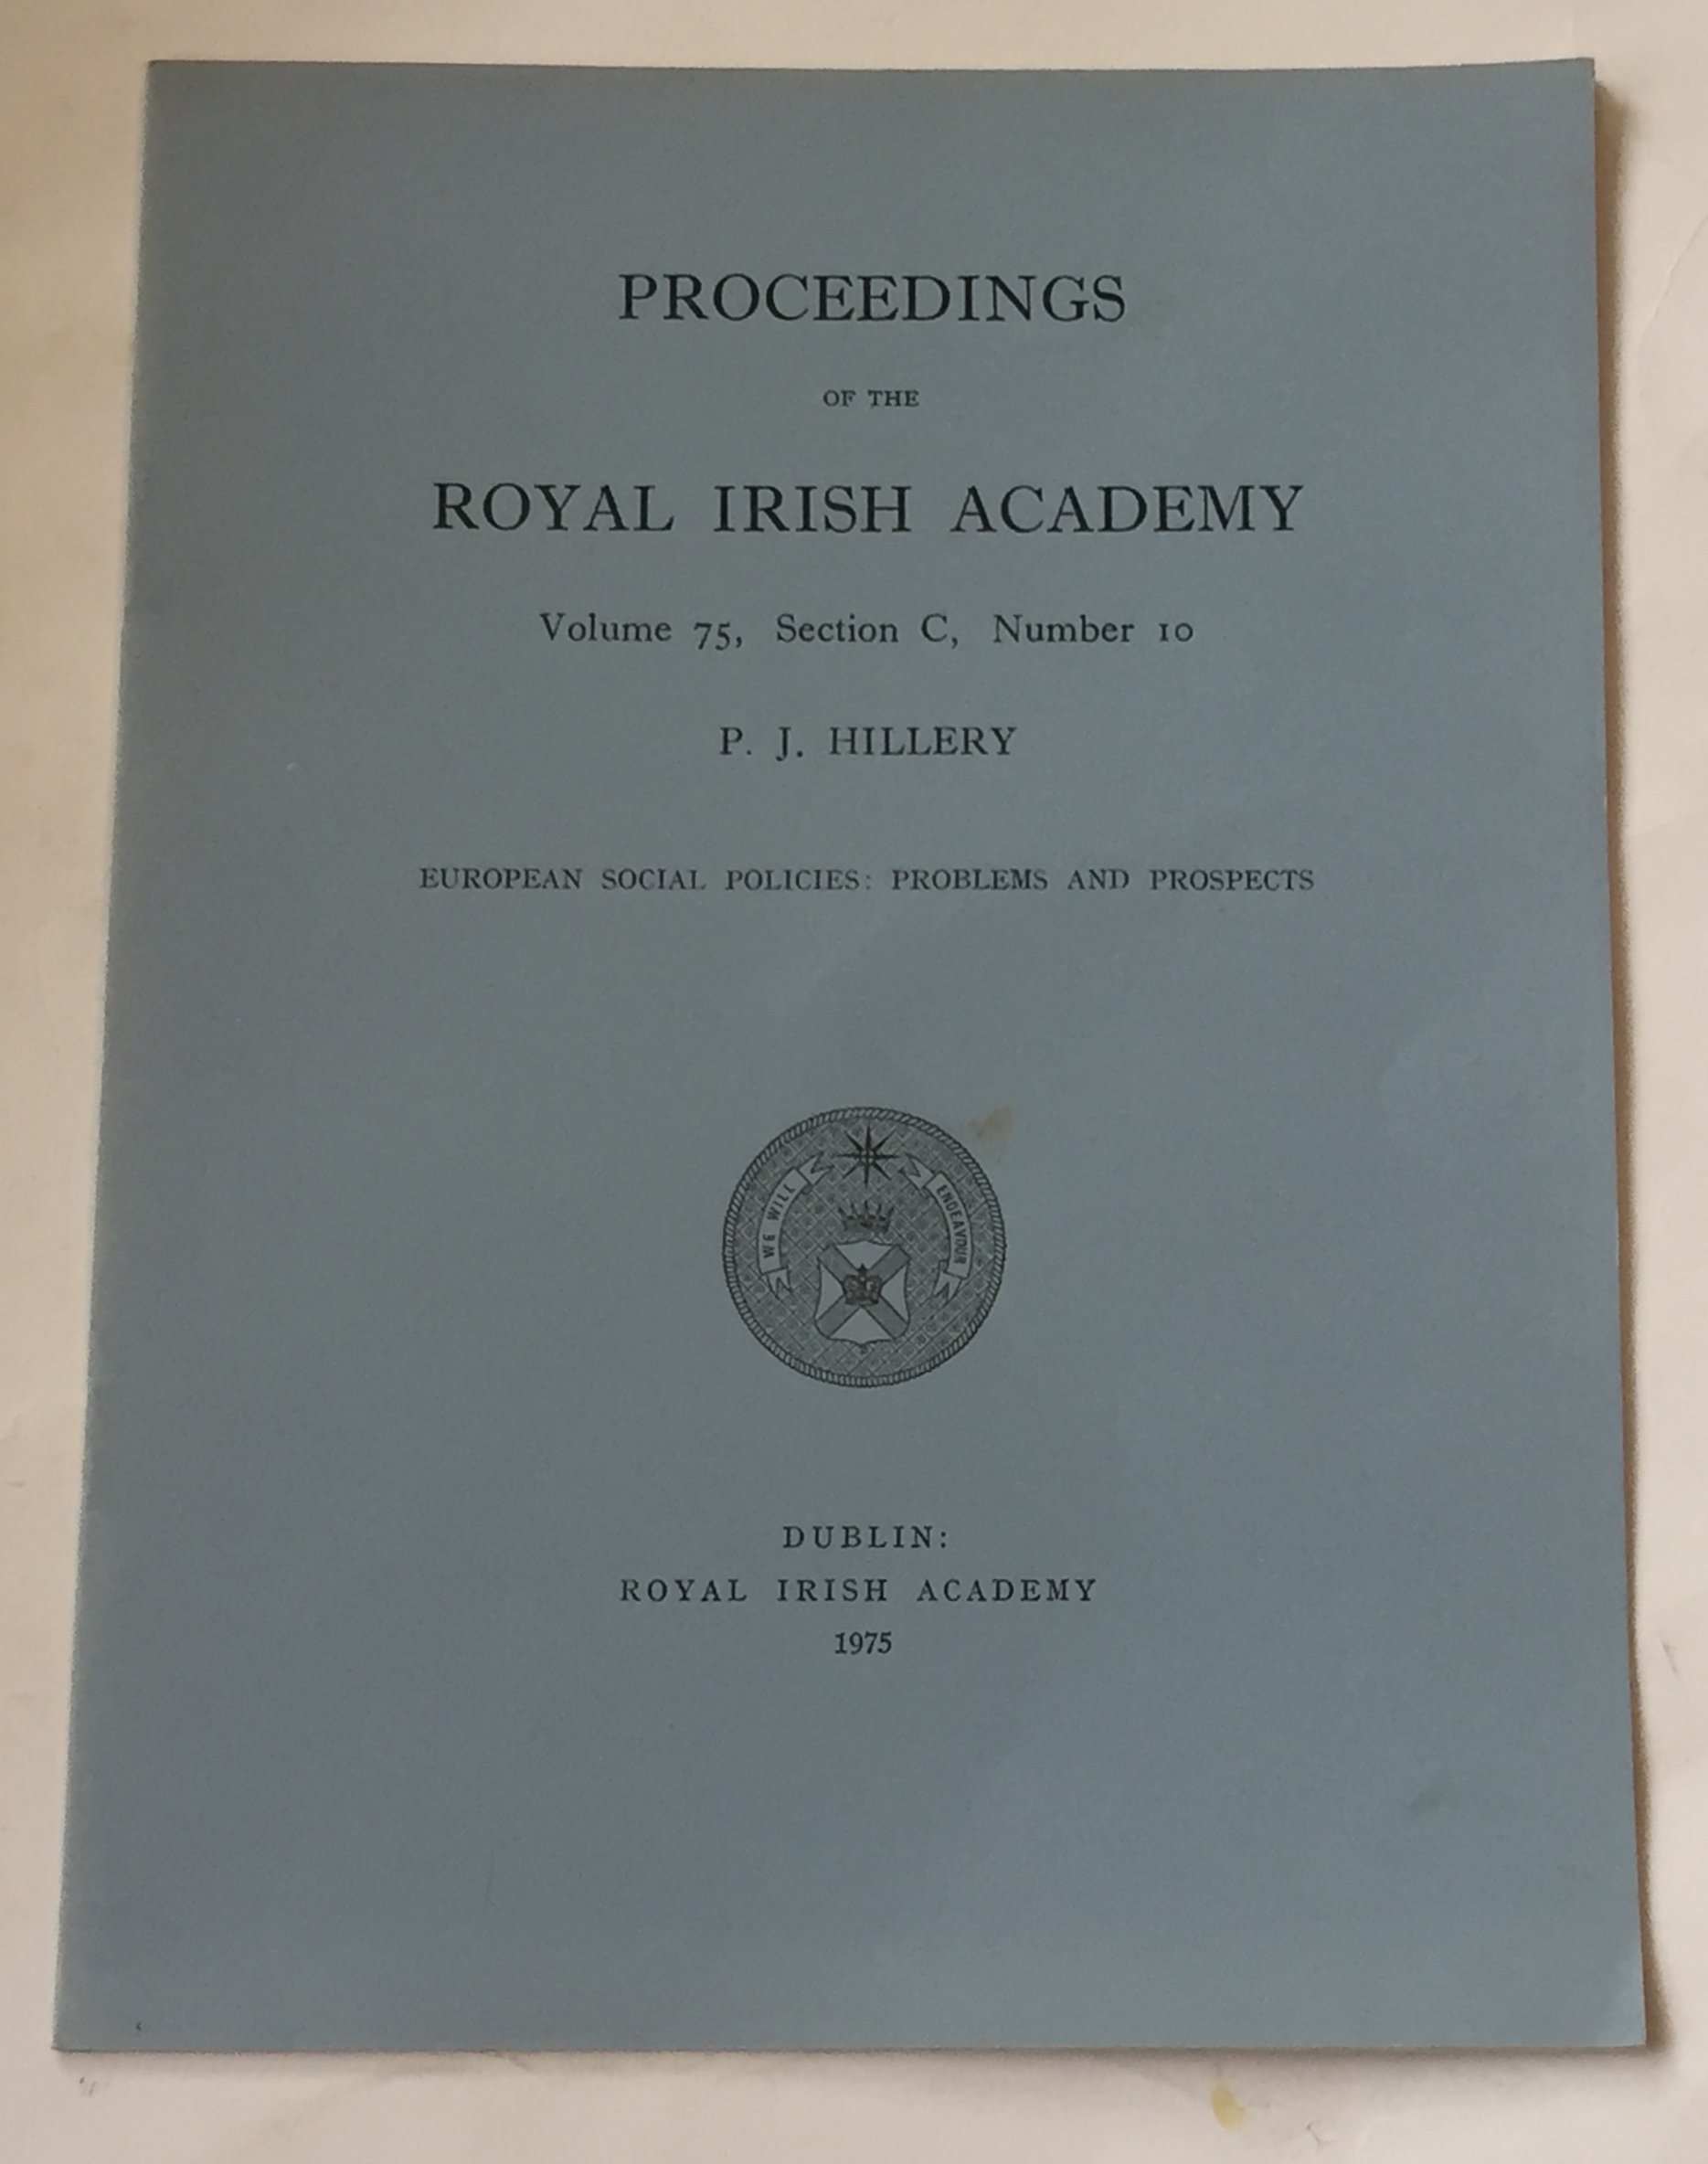 Image for European social policies: Problems and Prospects :Proceedings of the Royal Irish Academy, Volume 75, Section C, No. 10